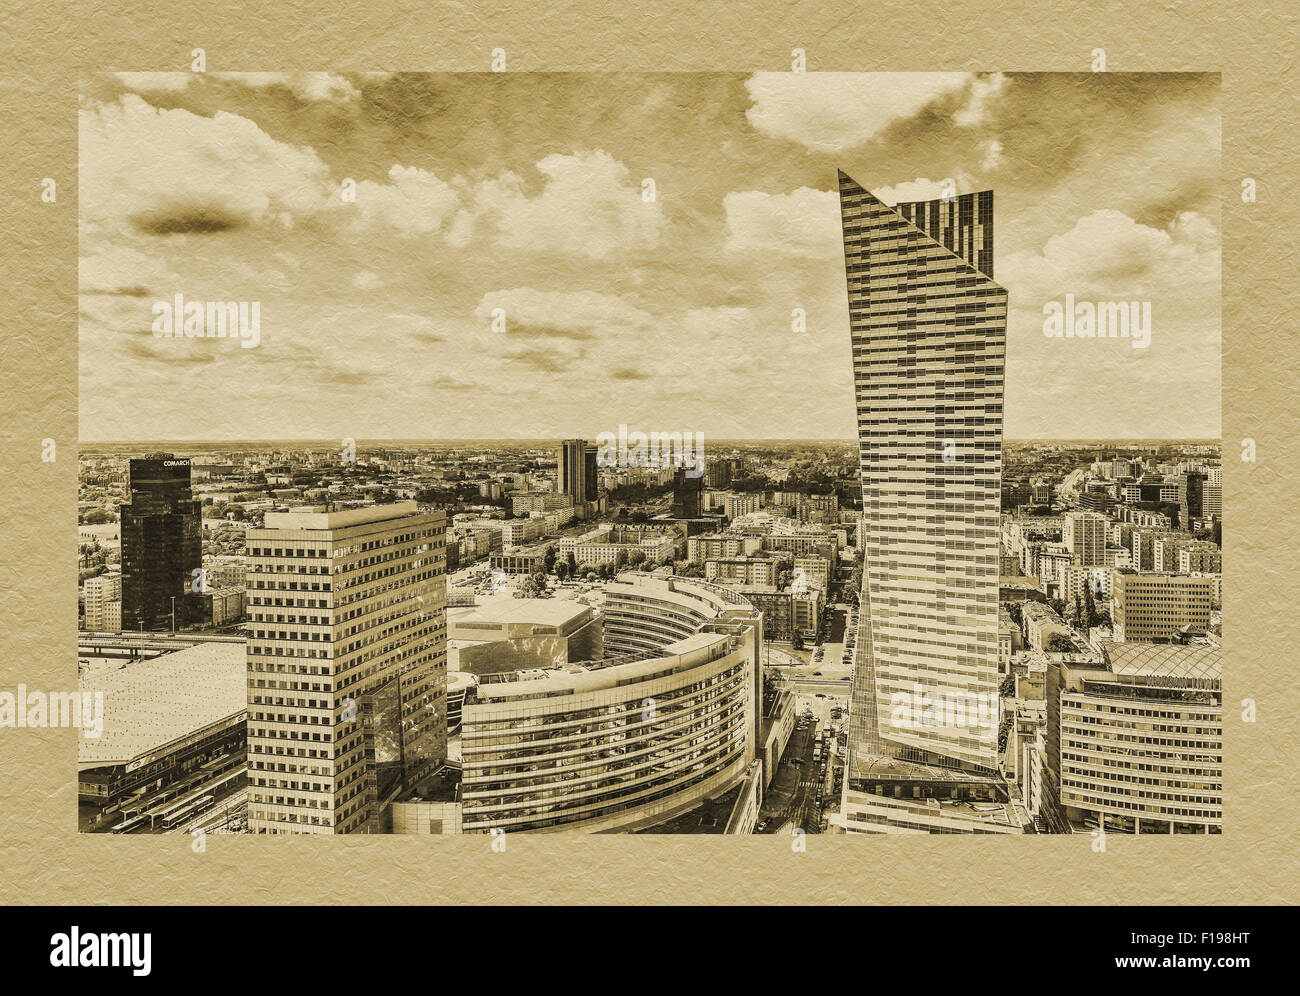 The Zlota 44 building is located on the right side. The architect was Daniel Libeskind, Warsaw, Masovian, Poland, Stock Photo